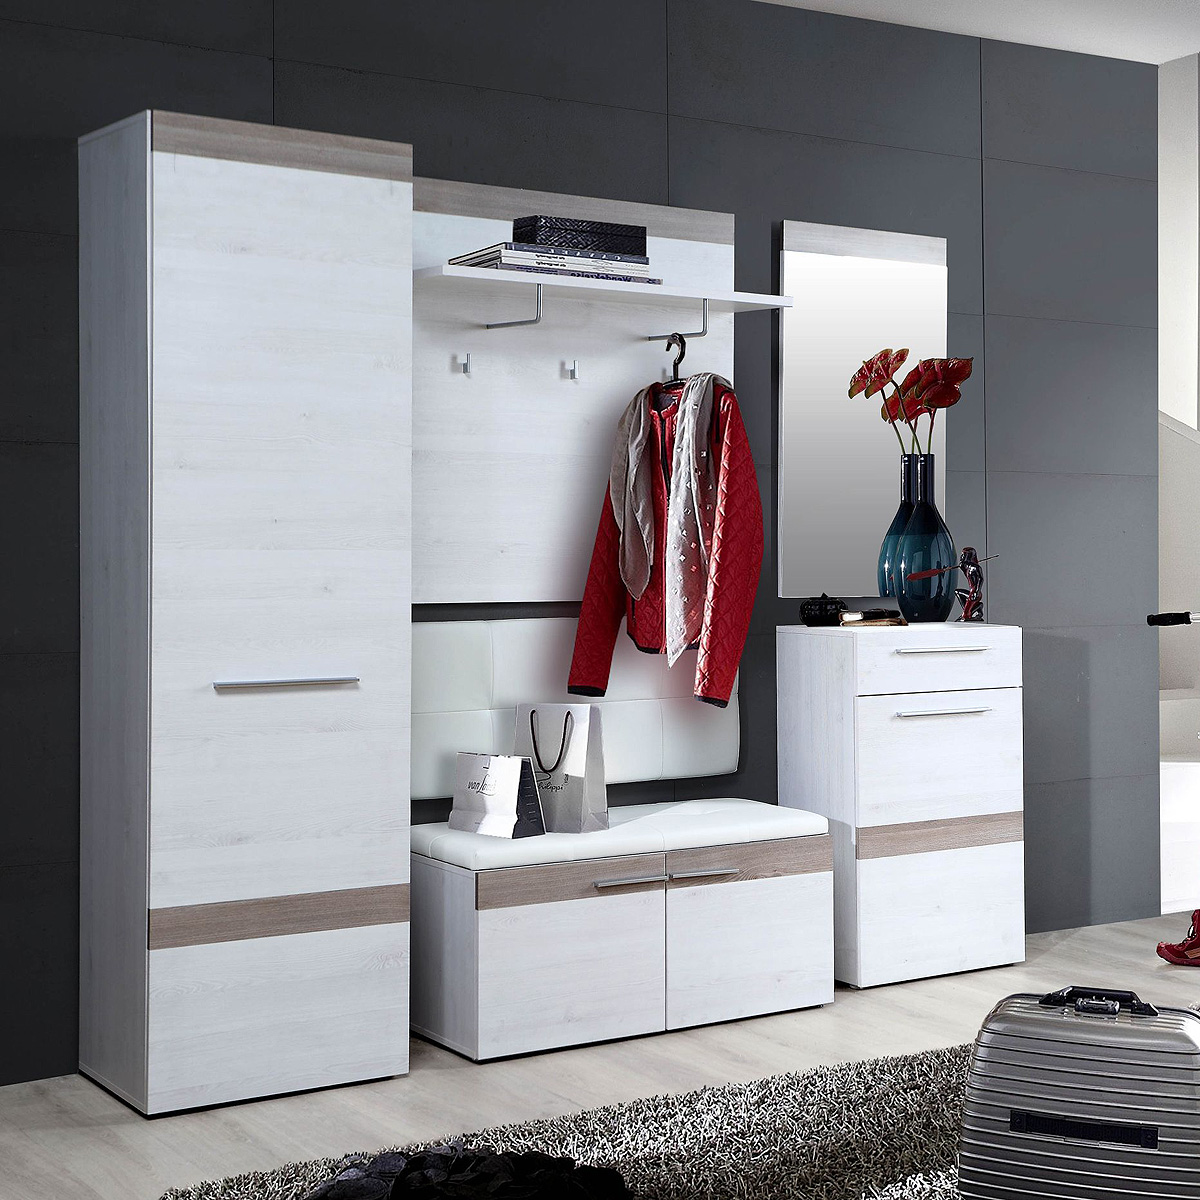 garderobenset alesco garderobe flurm bel in schnee eiche und nelsoneiche ebay. Black Bedroom Furniture Sets. Home Design Ideas